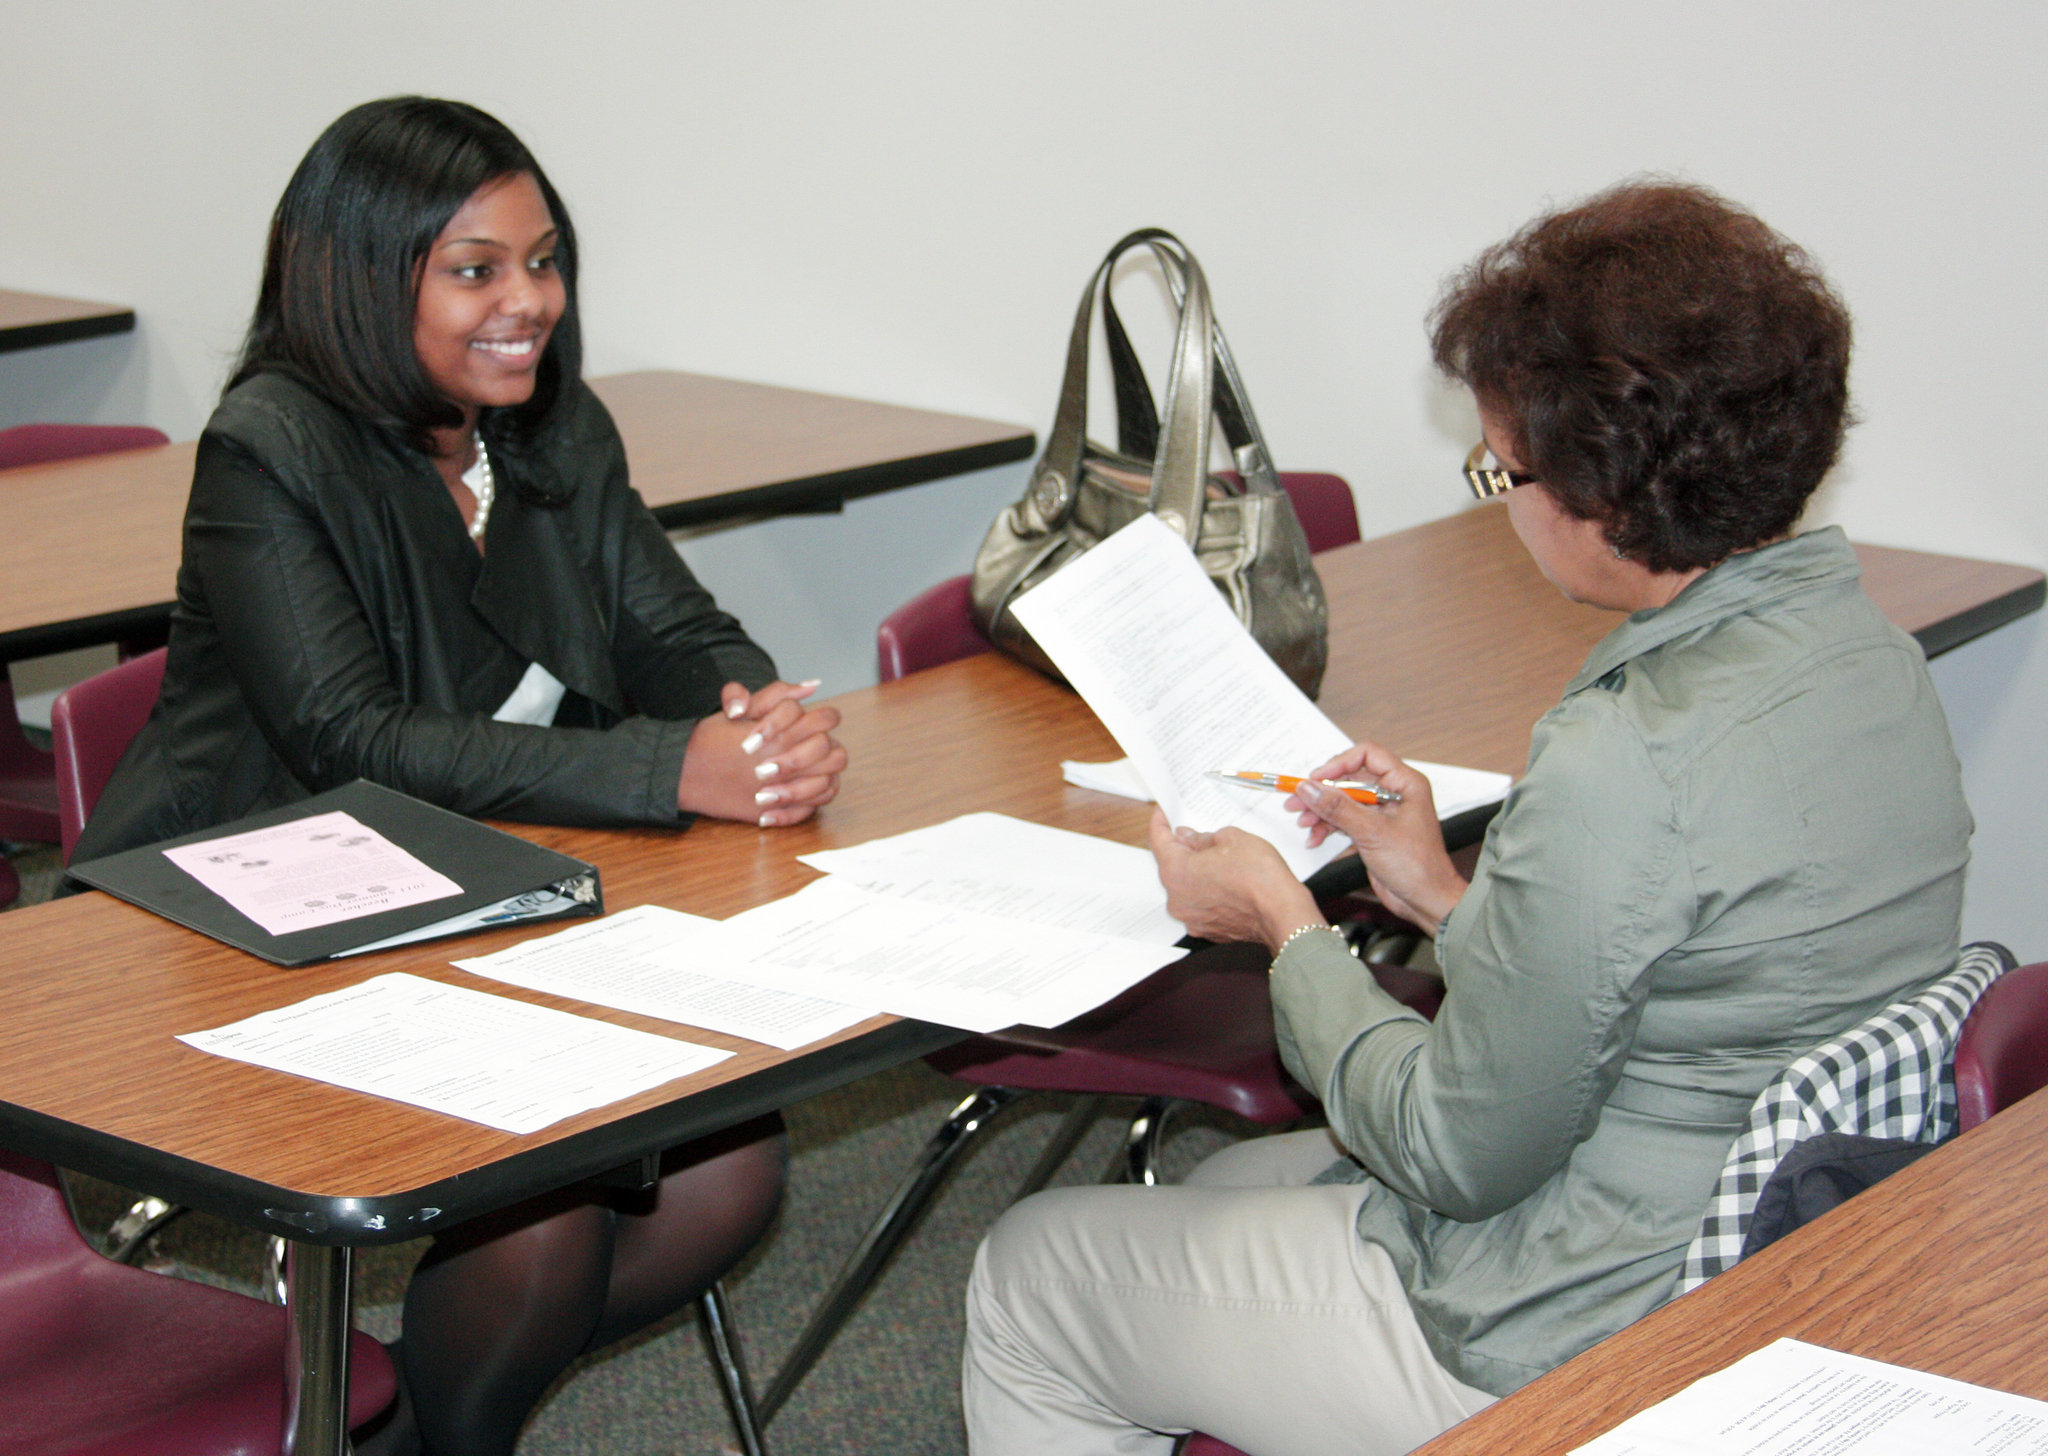 10 Tips for Teens to Have a Successful Job Interview |